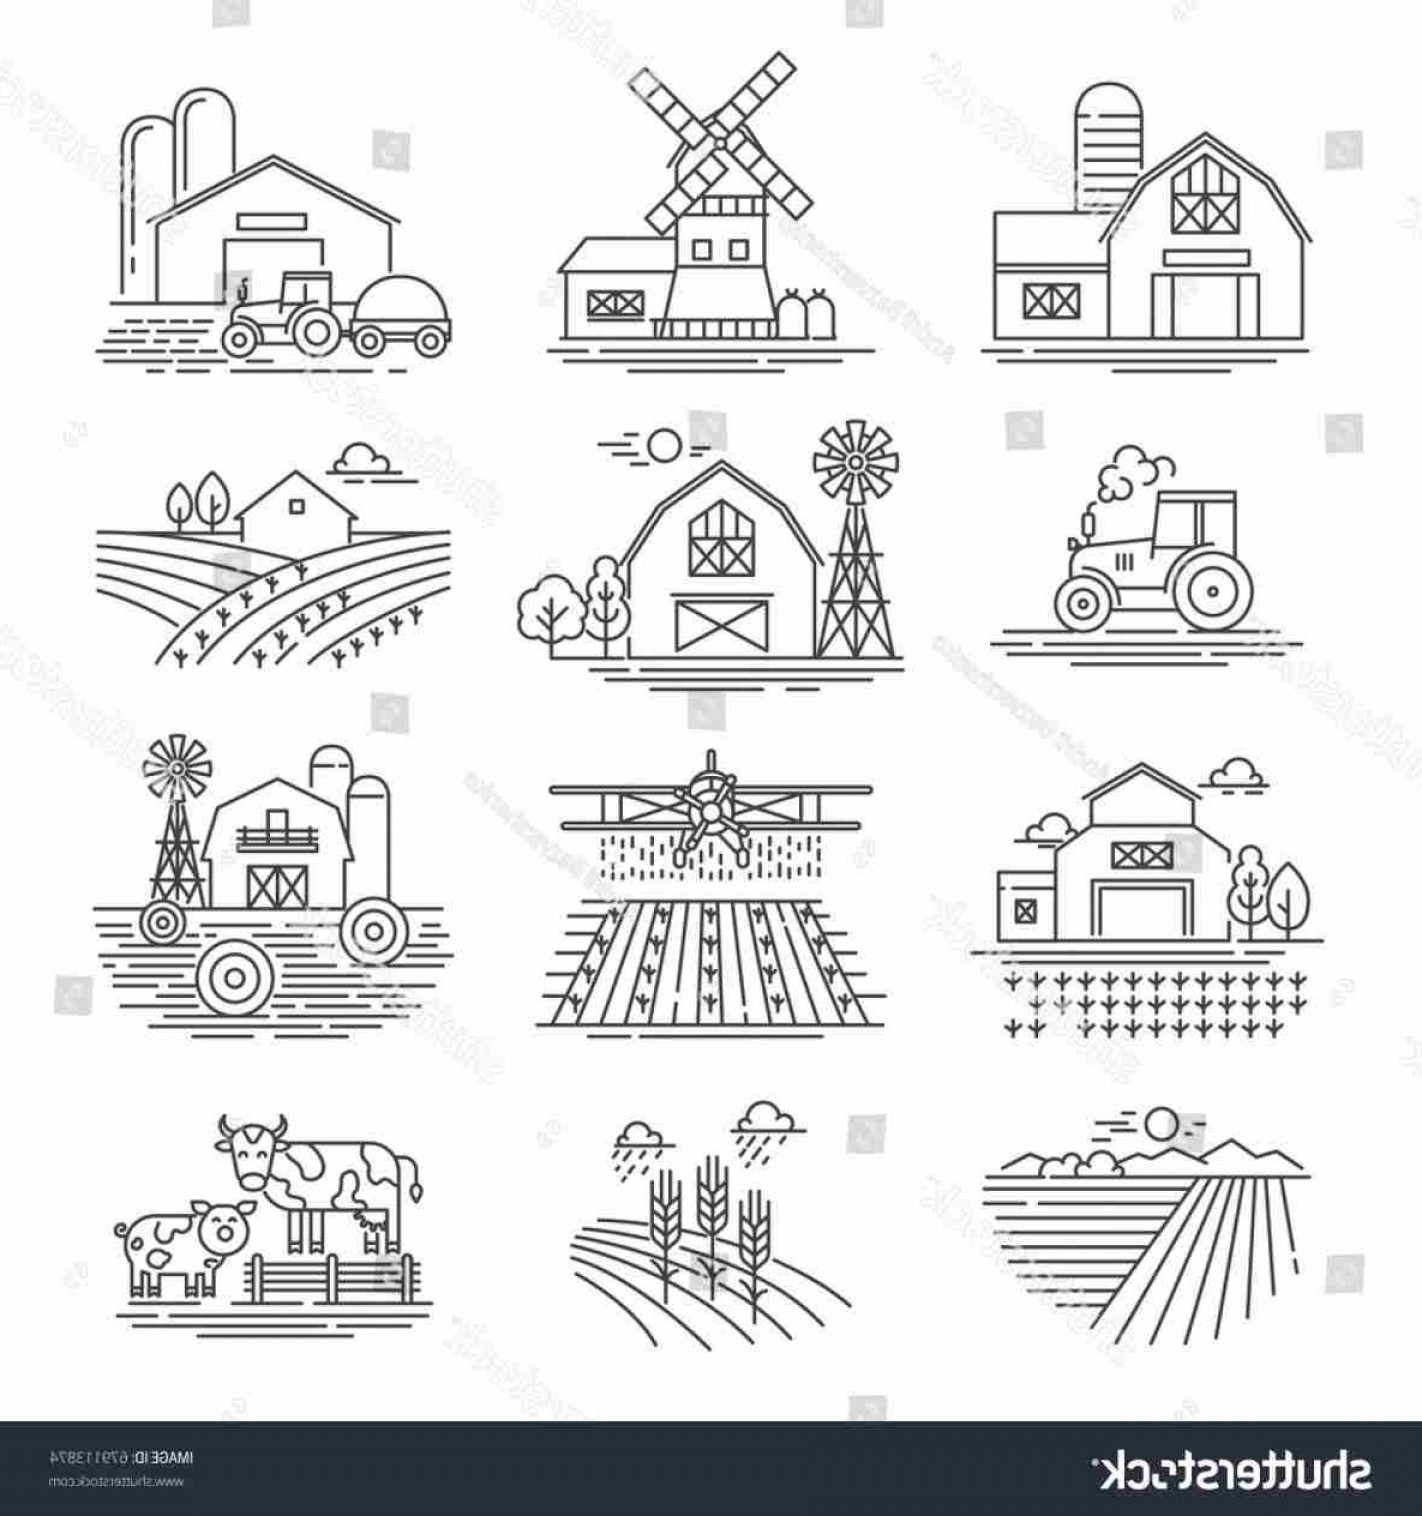 Free Football Vector Clip Art: Template Wheat Barley Stock Vector Football Field Free Download Clip Art Football Farm Fields Clipart Black